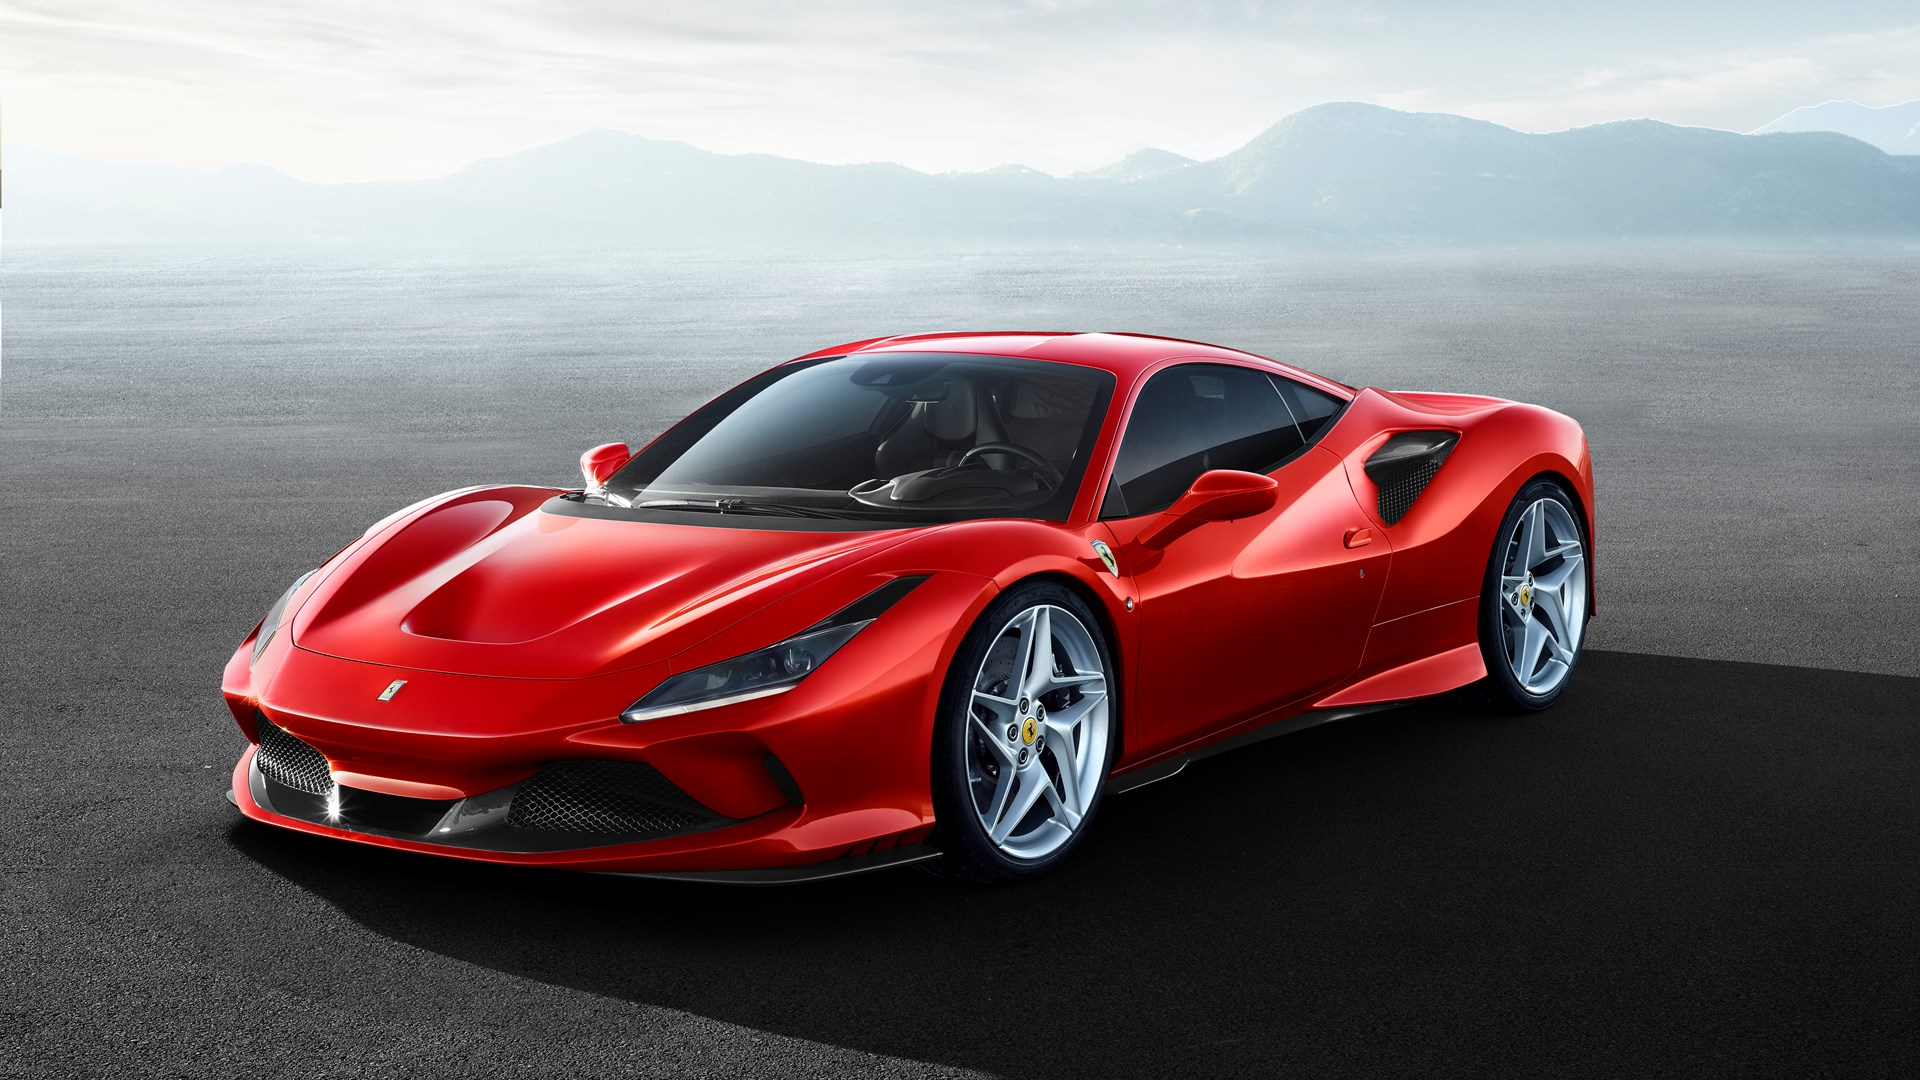 Ferrari S Latest Mid Engine Monster Is The F8 Tributo Autotrader Ca